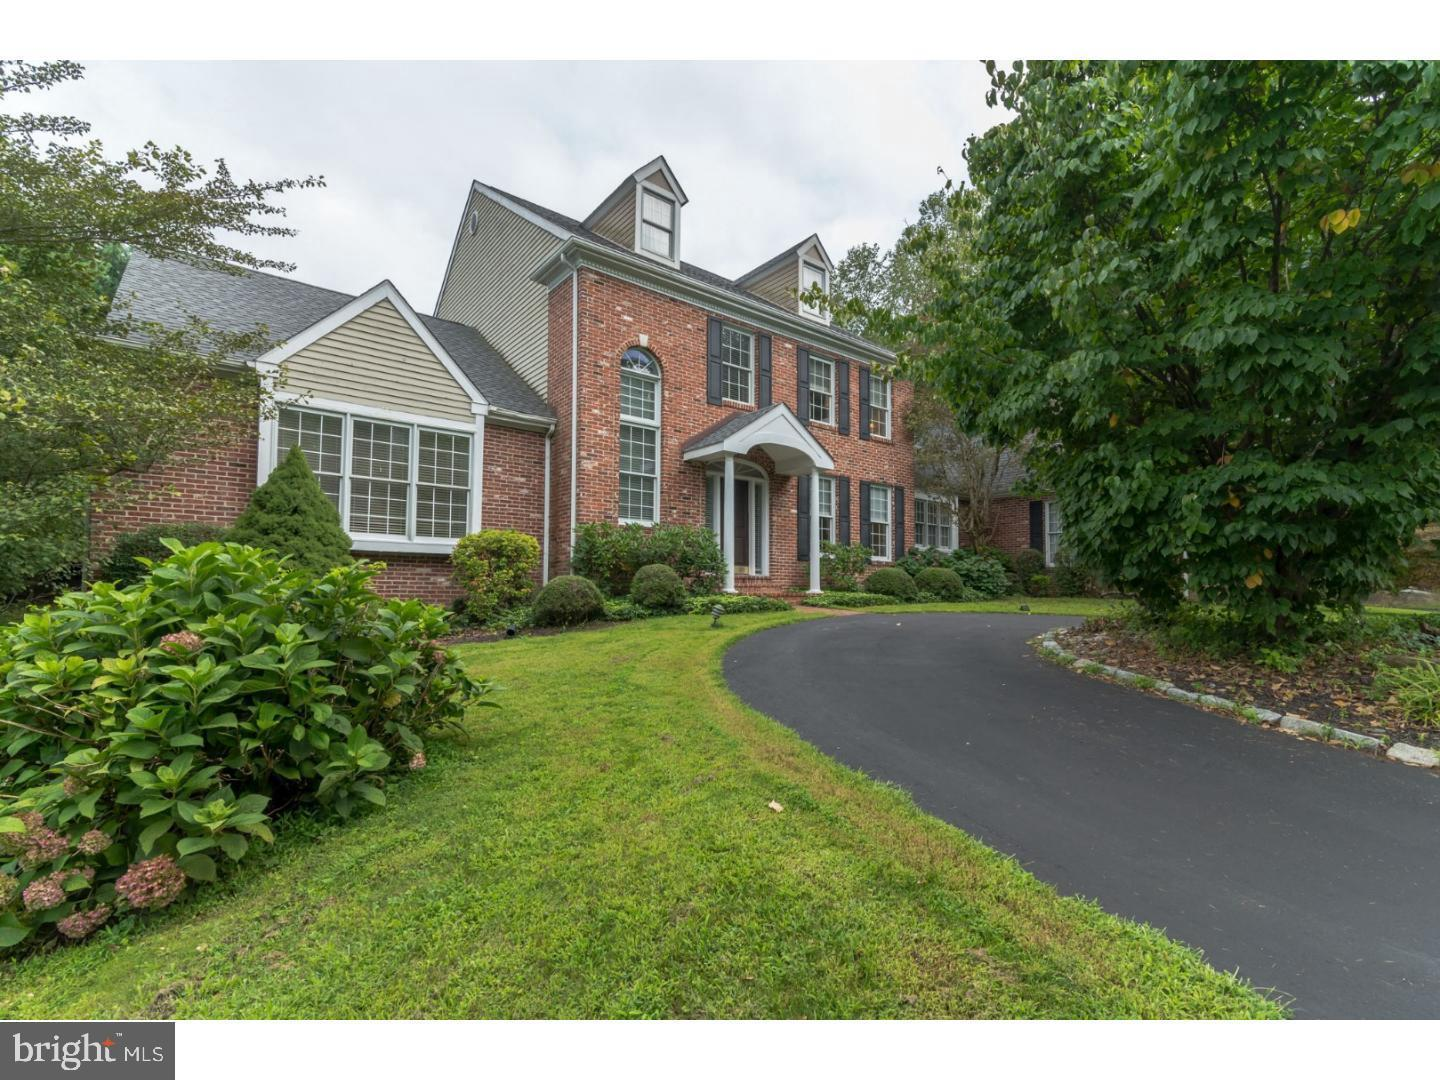 7 Canter Dr, Newtown Square, PA, 19073